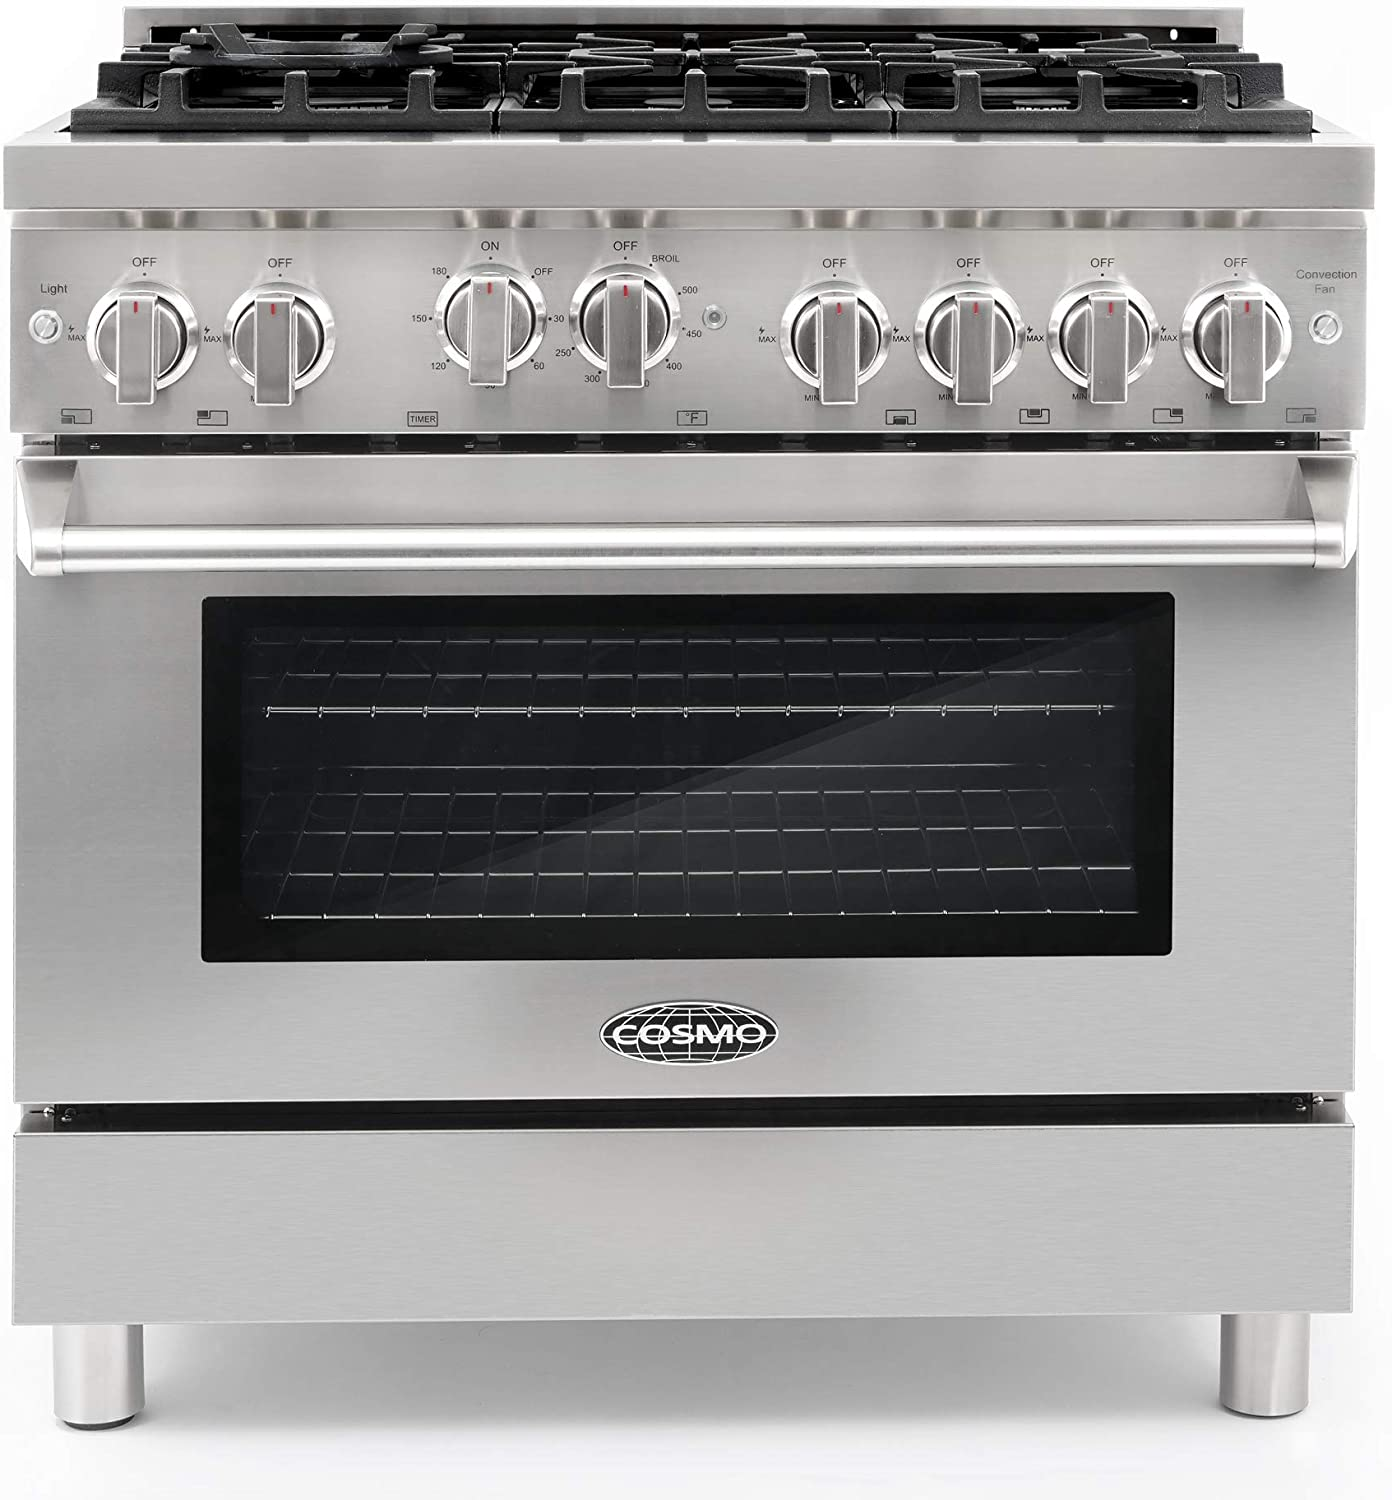 Choose Top 8 Best gas range for Home Chef in 2020 16